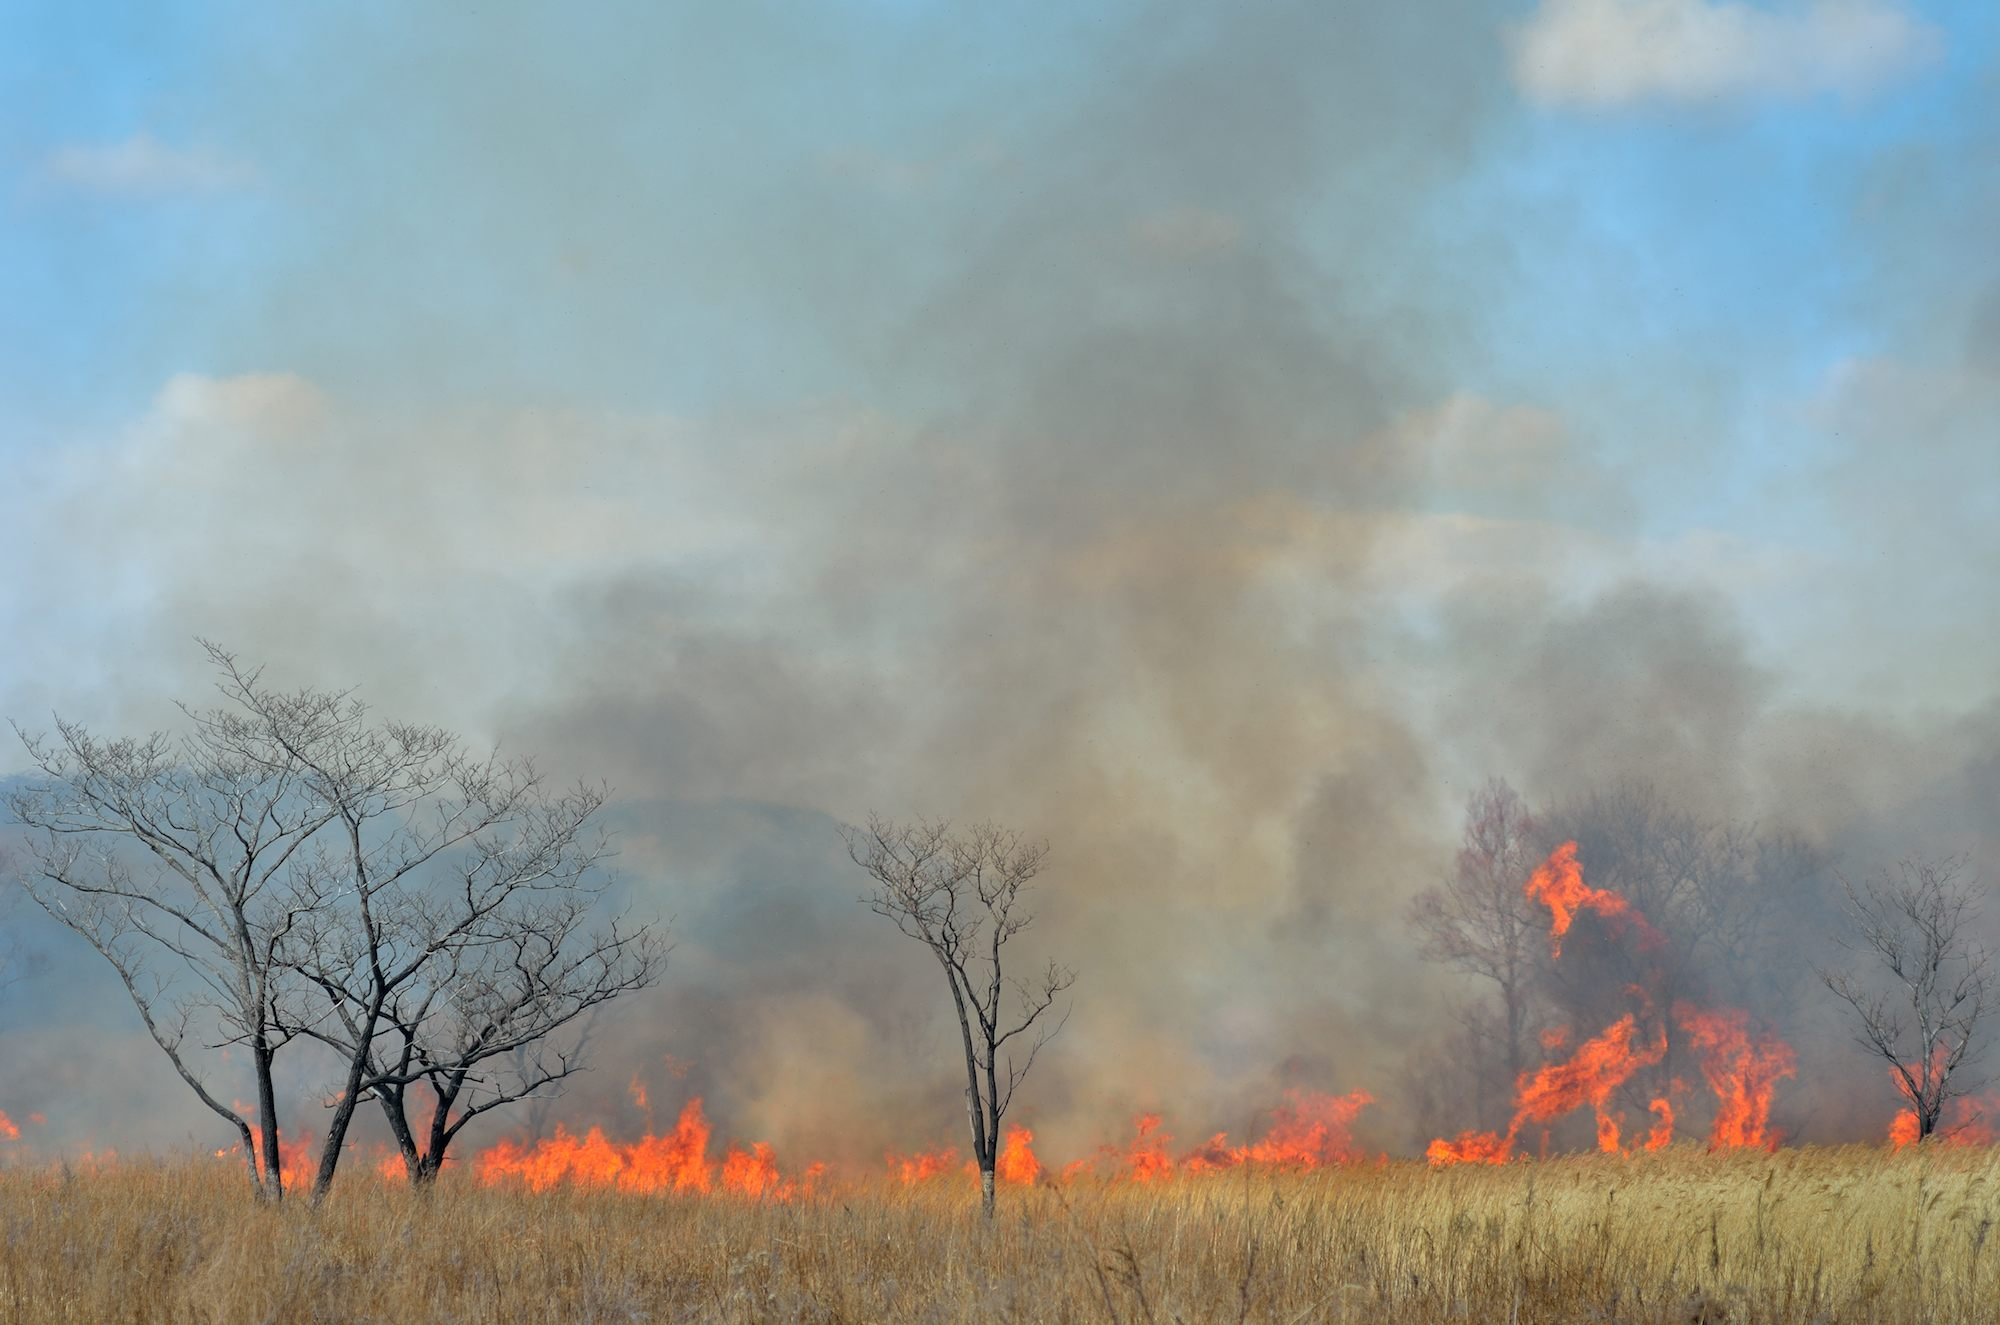 Australian climate change extreme weather risks identified: more wildfires, heat waves, fewer but stronger storms, increased flooding in coastal areas.